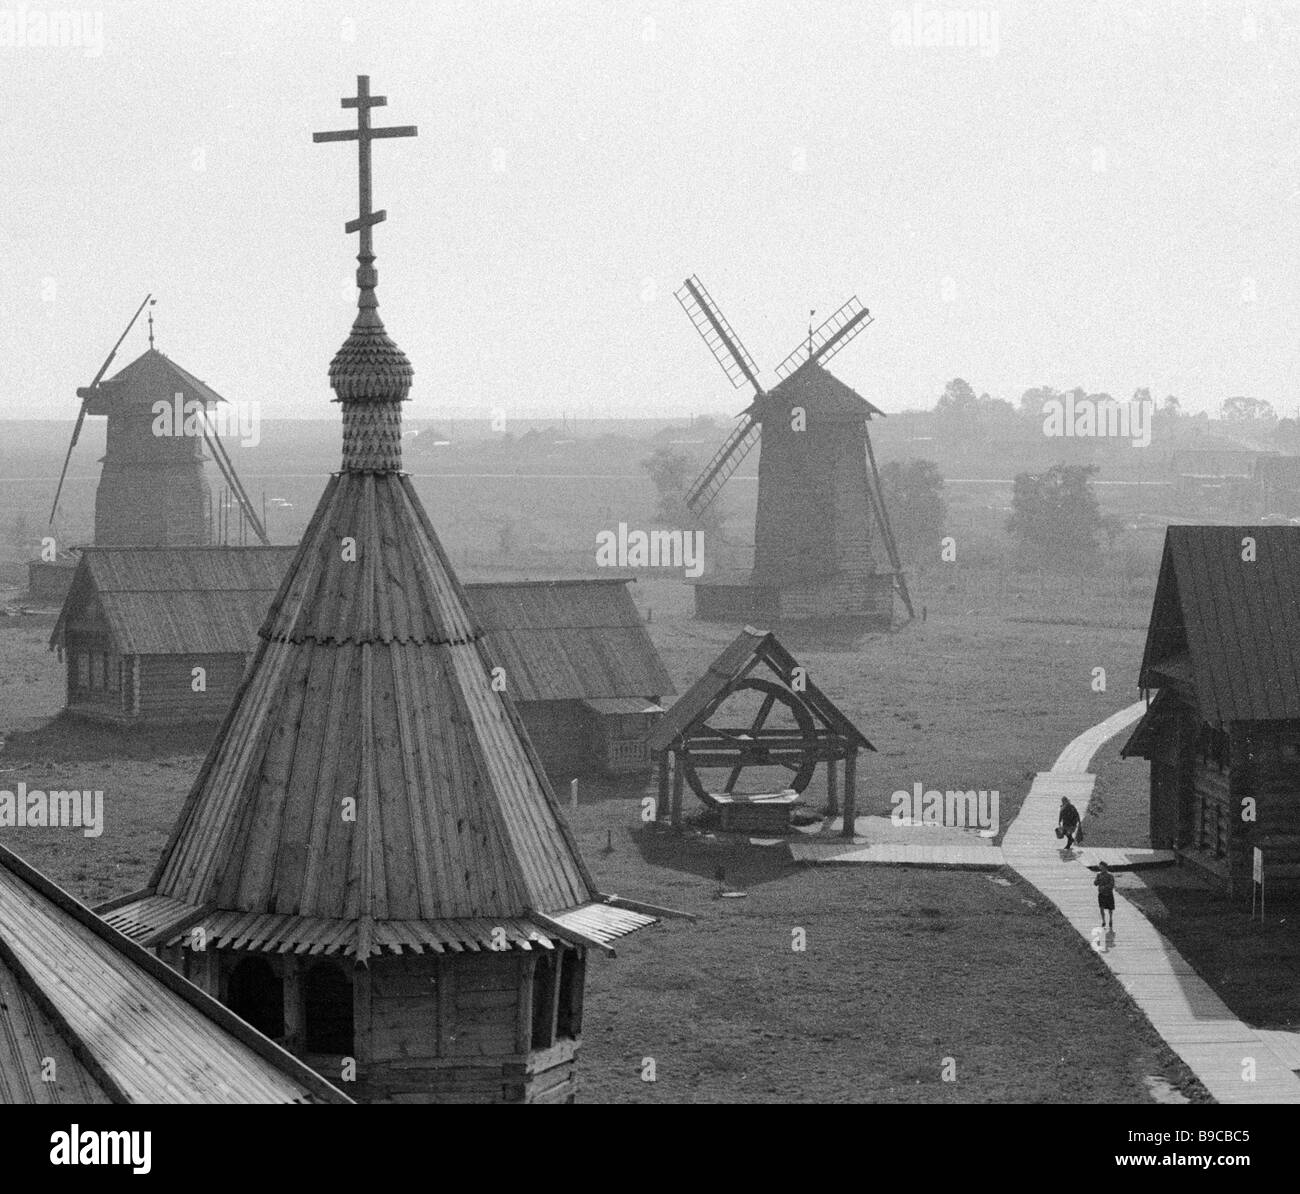 In the Suzdal open air wooden architecture museum - Stock Image